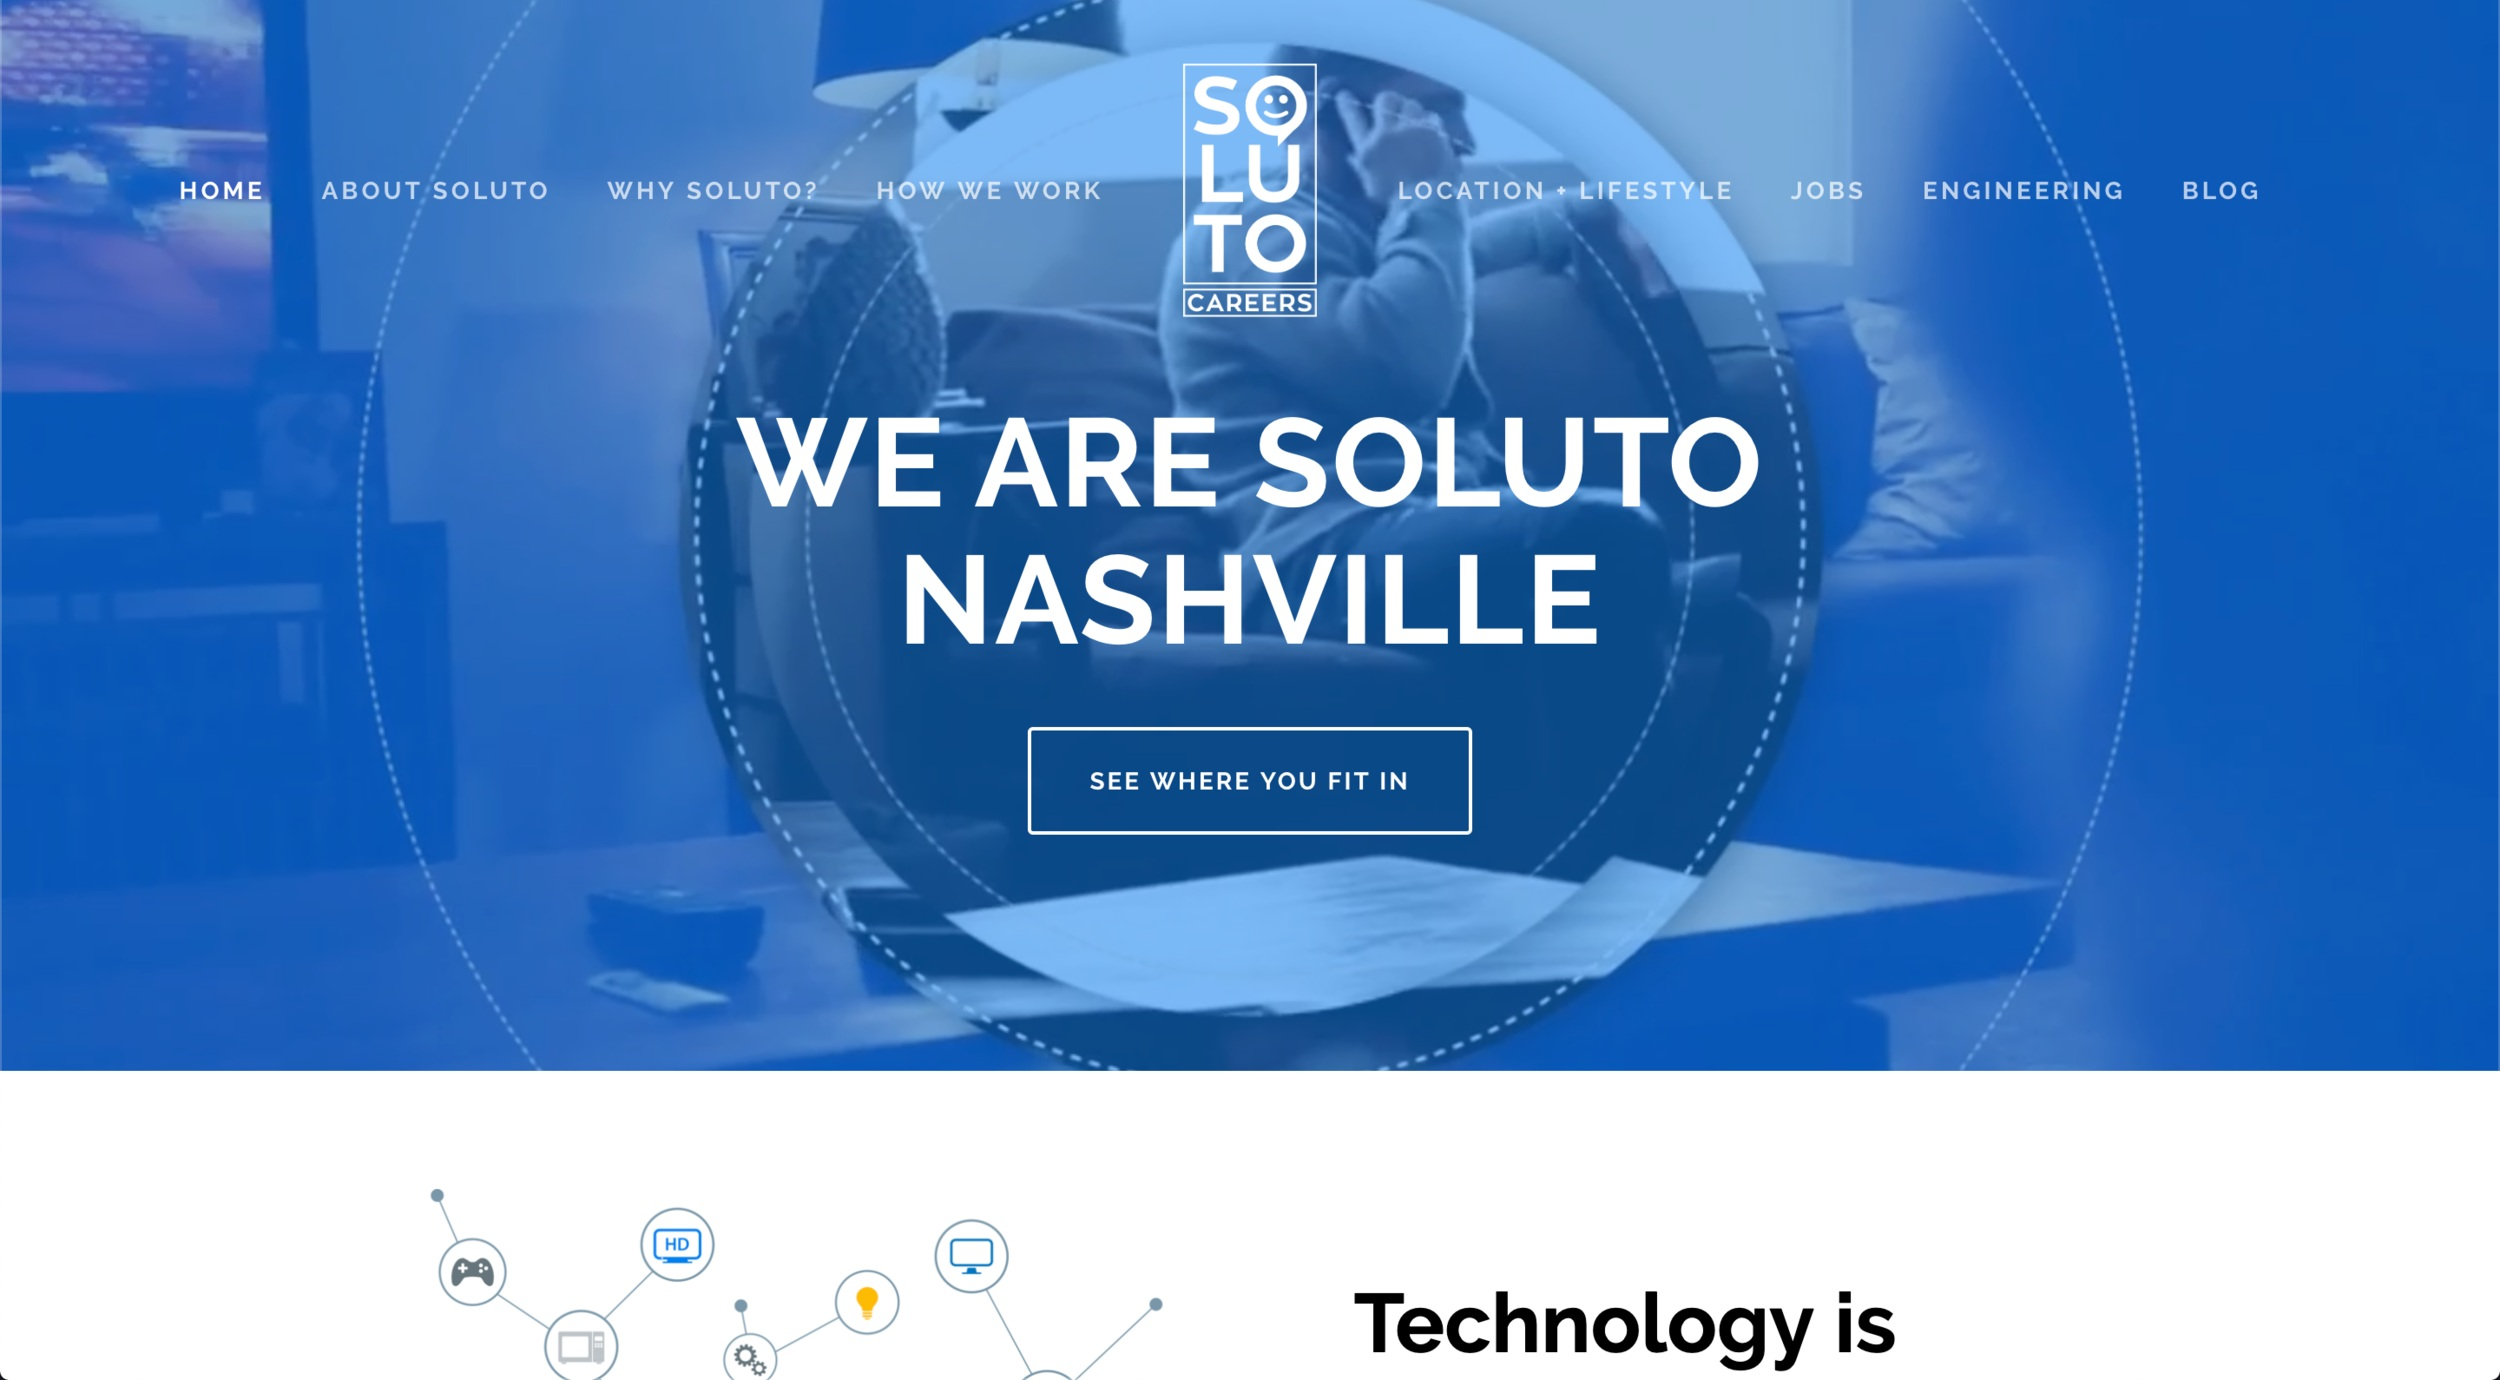 solutonashville.com - SS Site design and layout. Logo design. After Effects video customization.